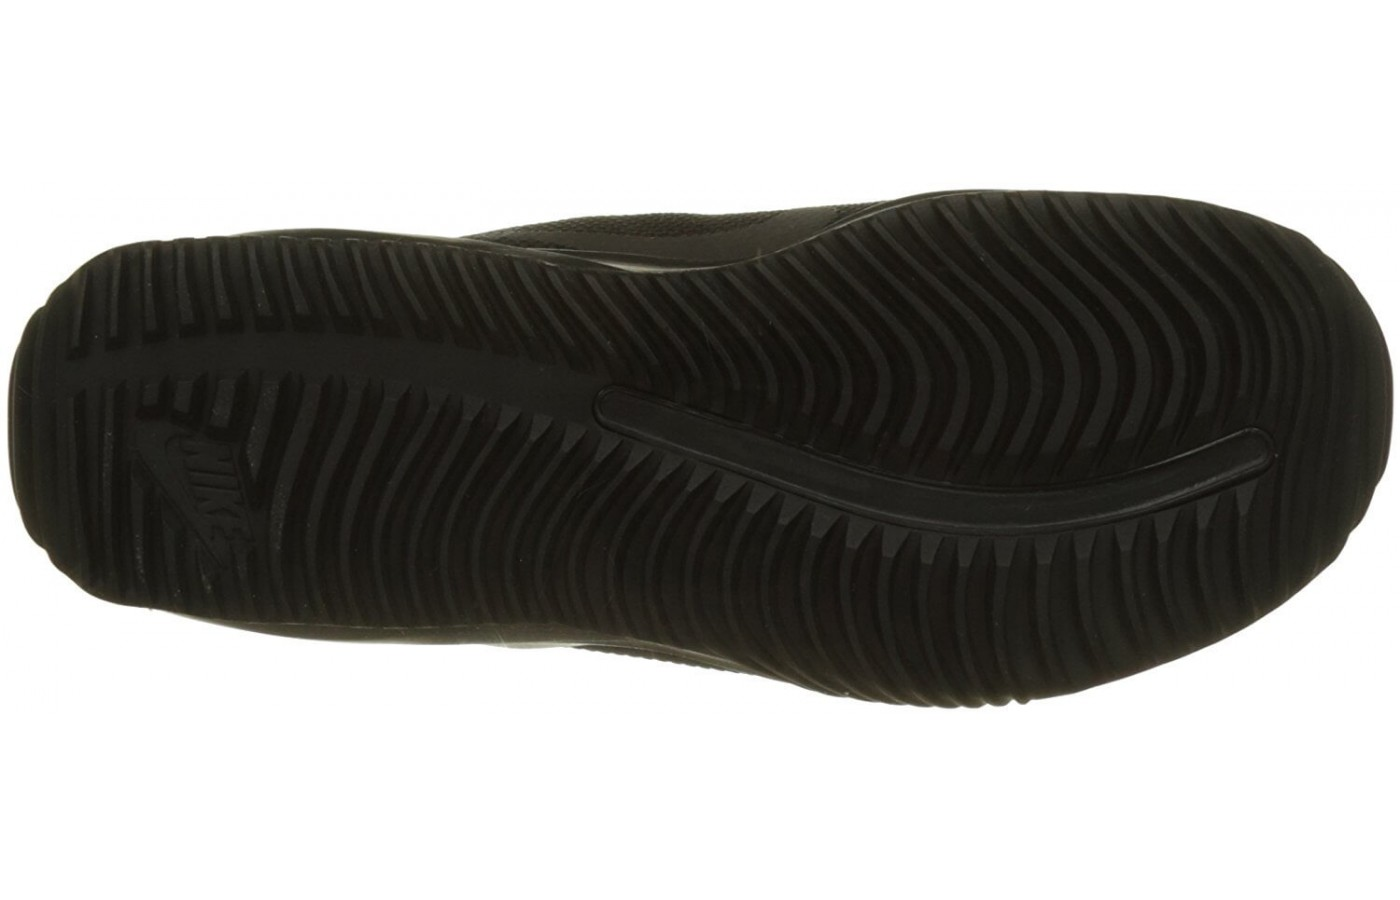 The rubber outsole adds traction and grip due to the bladed design.